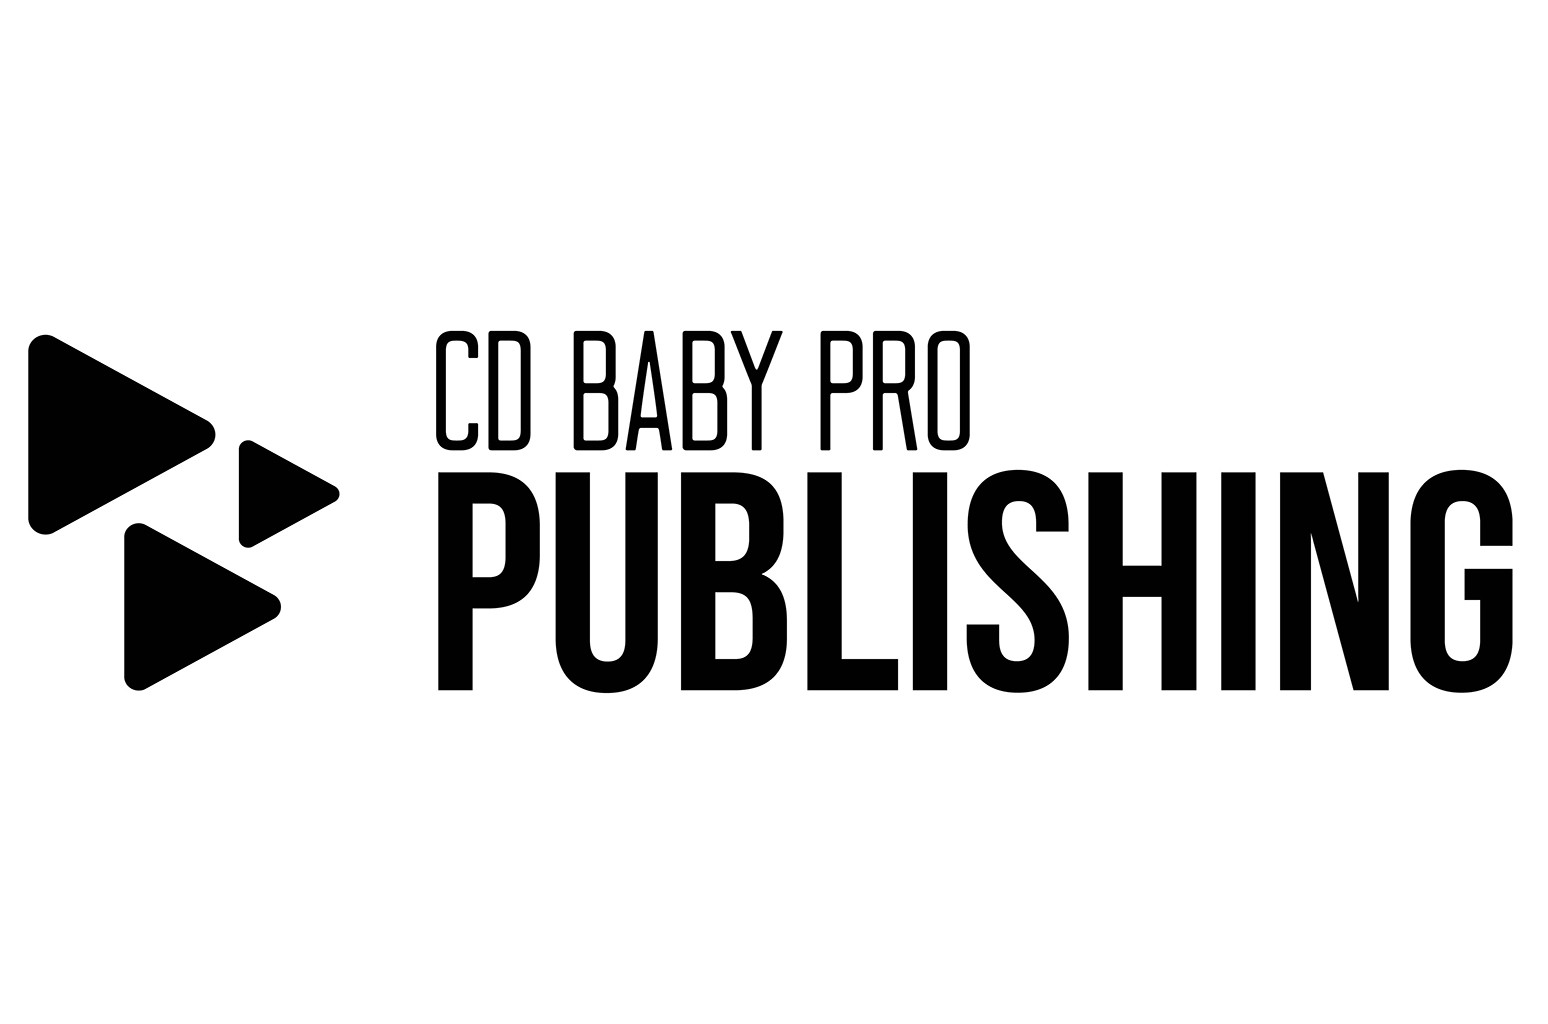 CD Baby Pro Publishing Logo